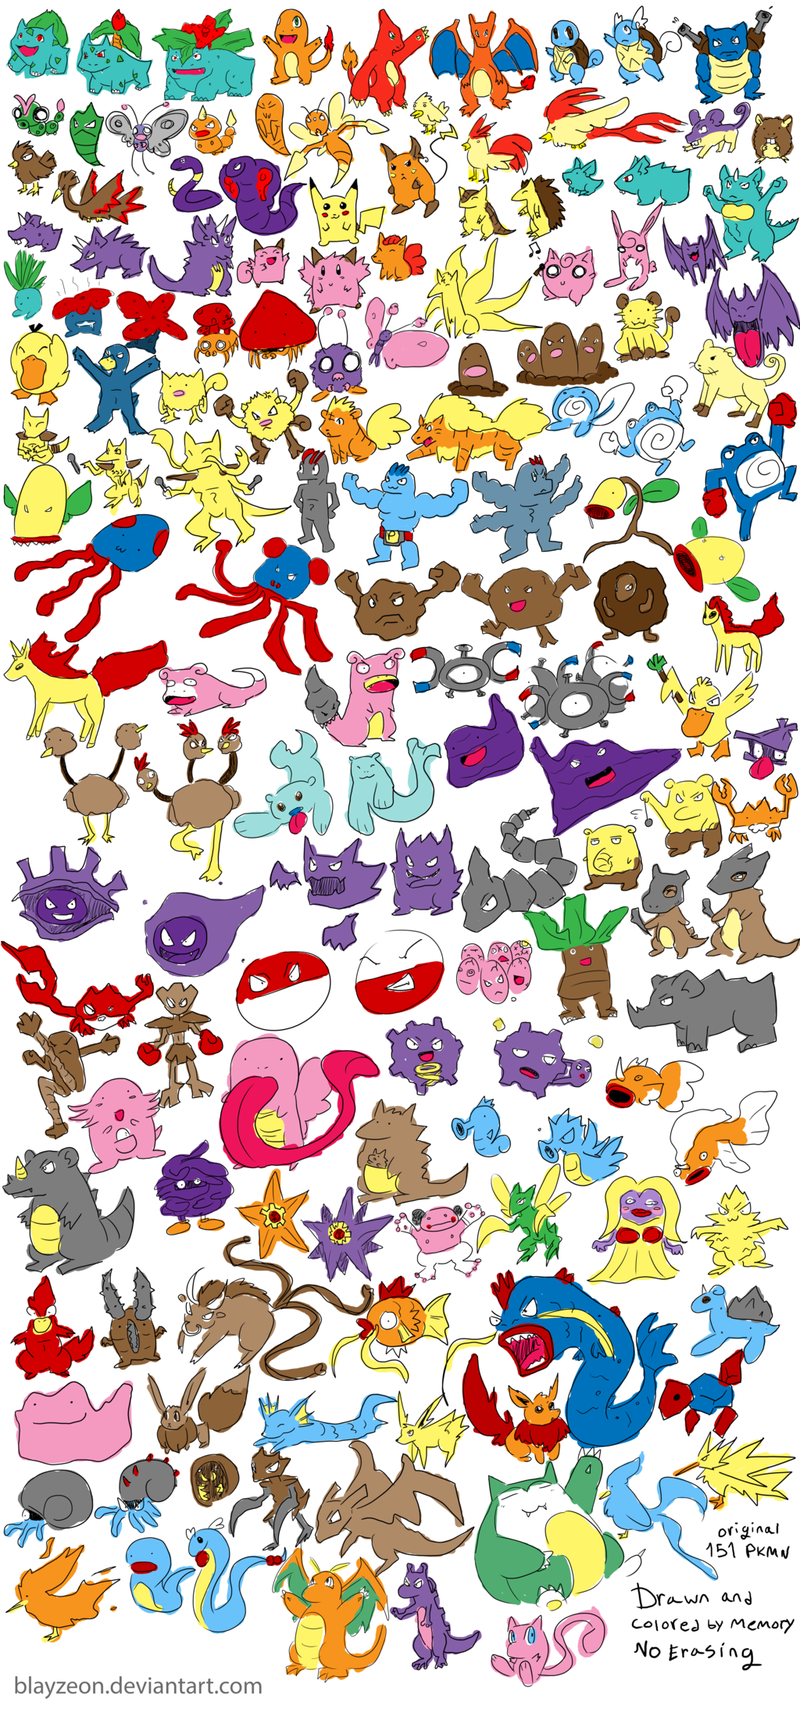 The Original 151 Pokemon, Drawn From Memory, Without Erasing